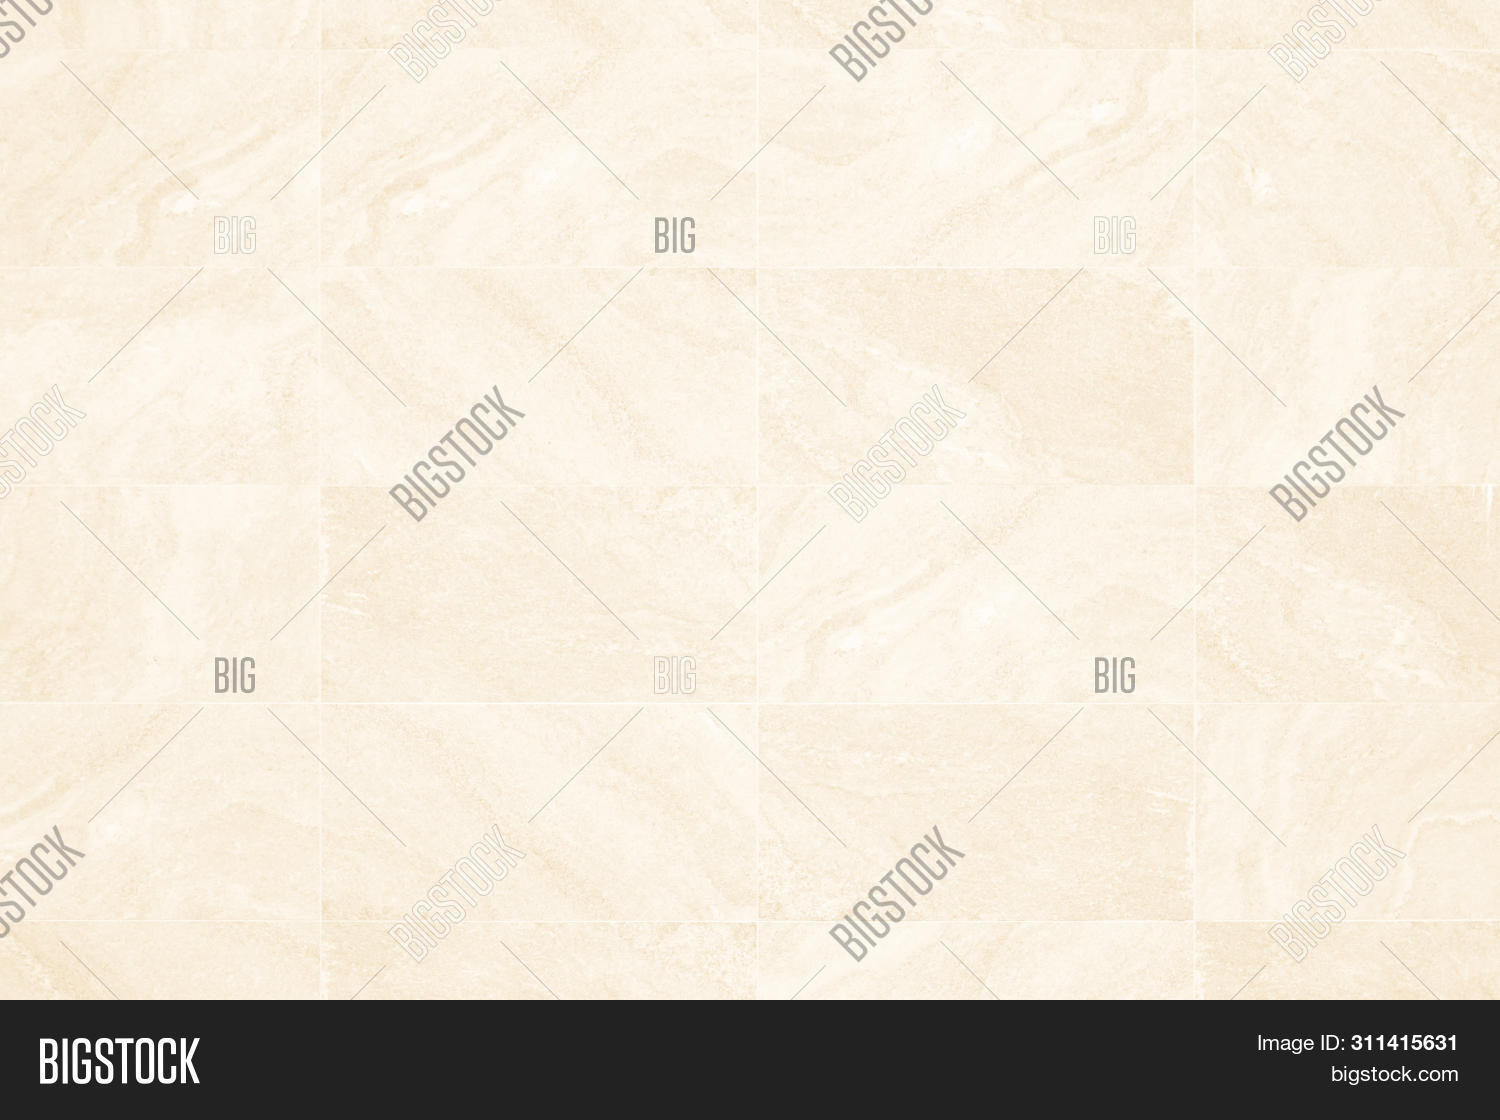 abstract,architecture,backdrop,background,bathroom,beige,boulder,carpet,ceramic,concrete,counter,cream,dark,decor,decoration,deluxe,design,distressed,dust,elegance,exterior,floor,granite,grunge,interior,kitchen,light,luxury,marble,material,nature,old,paper,parchment,pattern,rock,sand,seamless,smooth,spray,stone,surface,texture,tile,tracery,vintage,wall,wallpaper,weathered